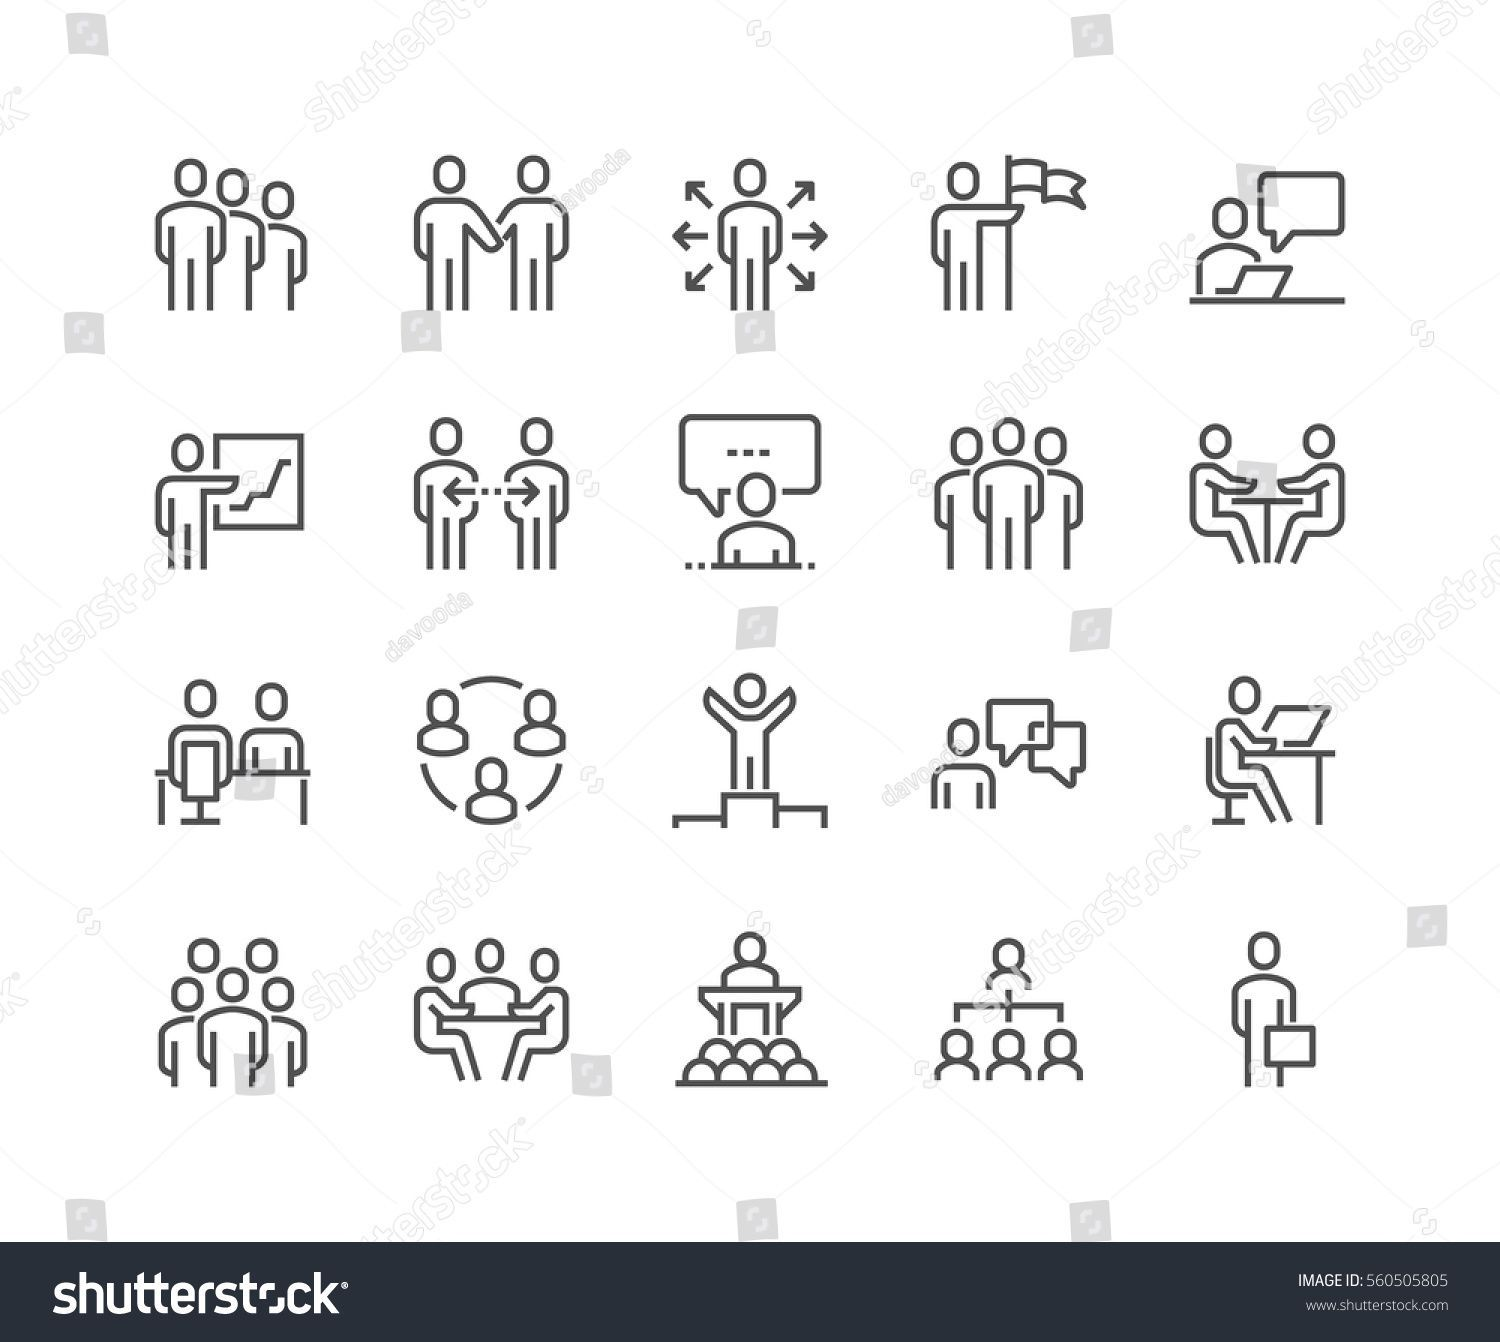 Simple Set Of Business People Related Vector Line Icons Contains Such Icons As One On One Meeting Workplace Busine Facilitation Graphique Pictogramme Picto